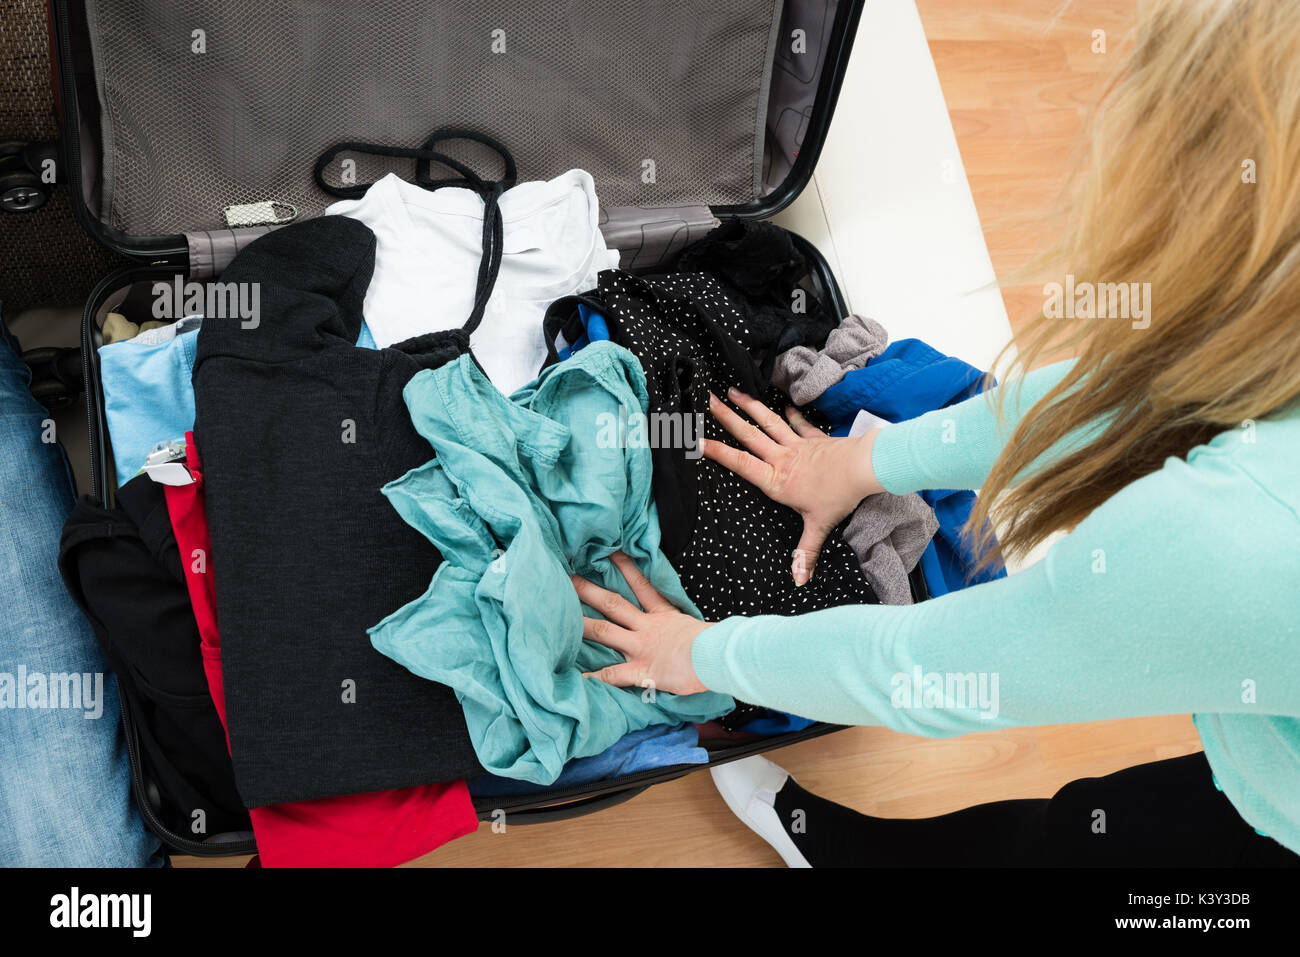 High Angle View Of Woman Packing Clothes In Suitcase - Stock Image